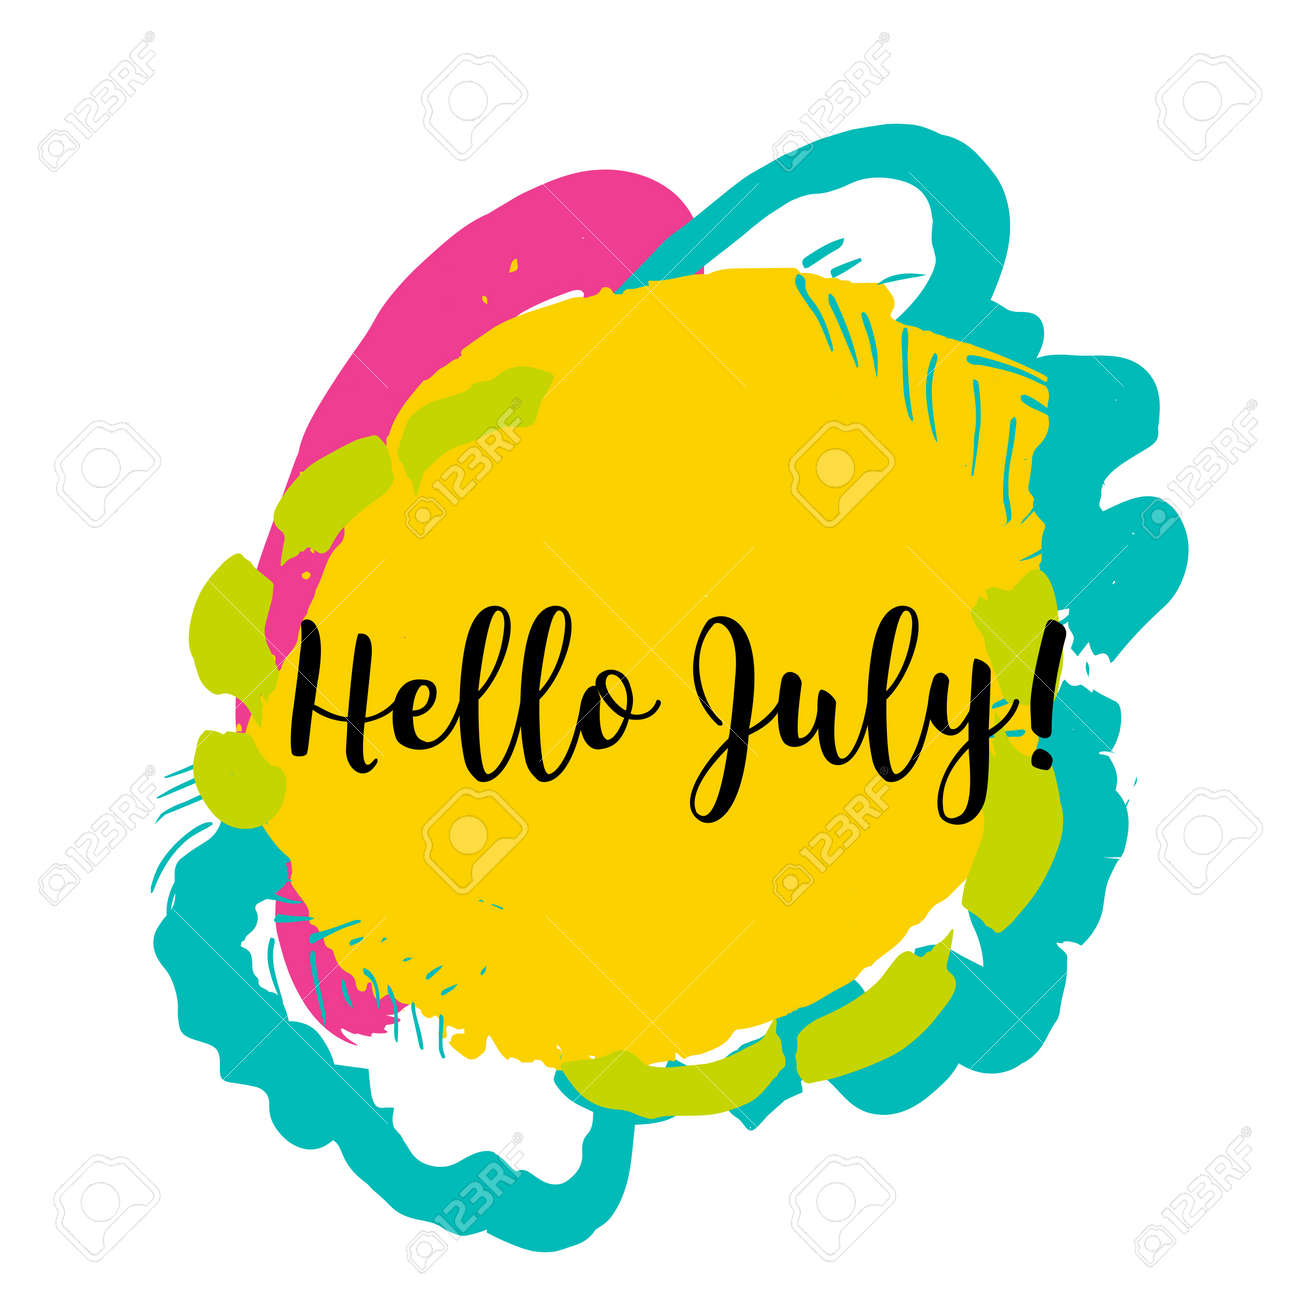 Hello July. Hand Drawn Design Isolated On Colorful Background. Concept  Image Poster For Wall